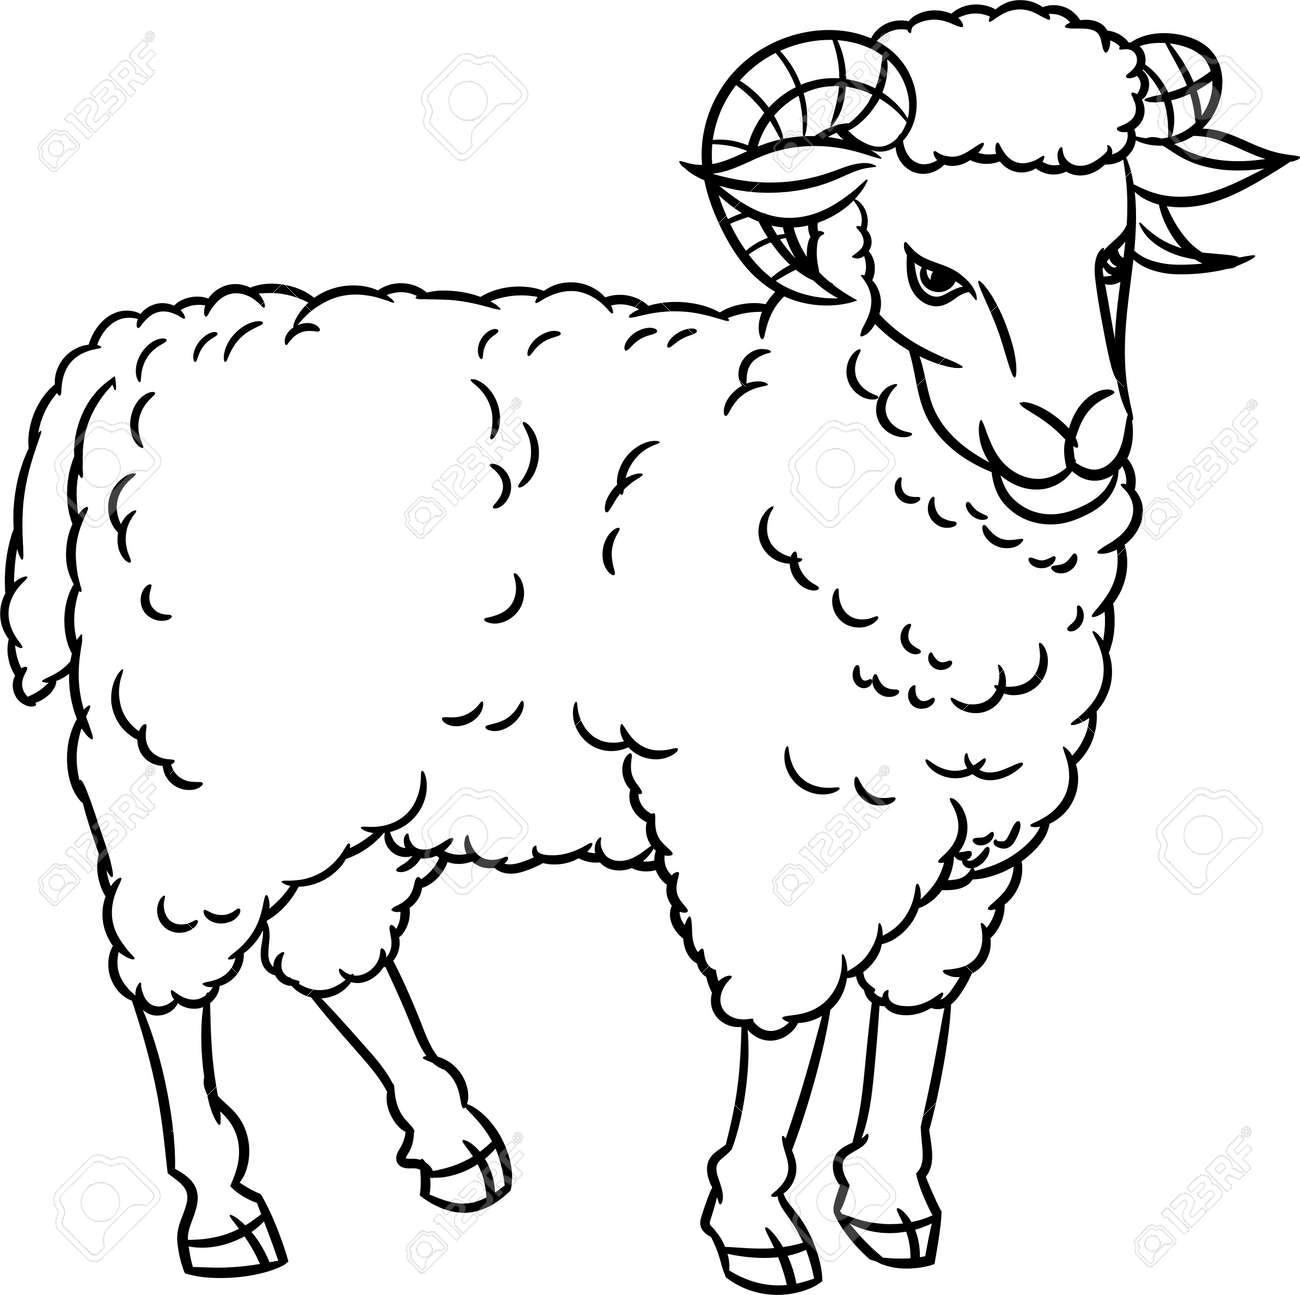 Cartoon Hand Drawing Sheep Farm Animals Set Sketch Graphic Style Stock Vector 84215769 123rfcom Hand Drawing Sheep Farm Animals Set Sketch Graphic Style Royalty